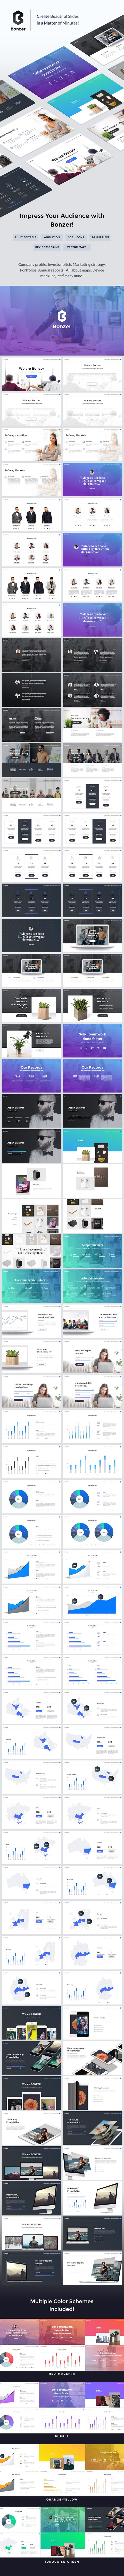 Bonzer Creative Keynote Template #professional #keynote • Download ➝ https://graphicriver.net/item/bonzer-creative-keynote-template/19448020?ref=pxcr